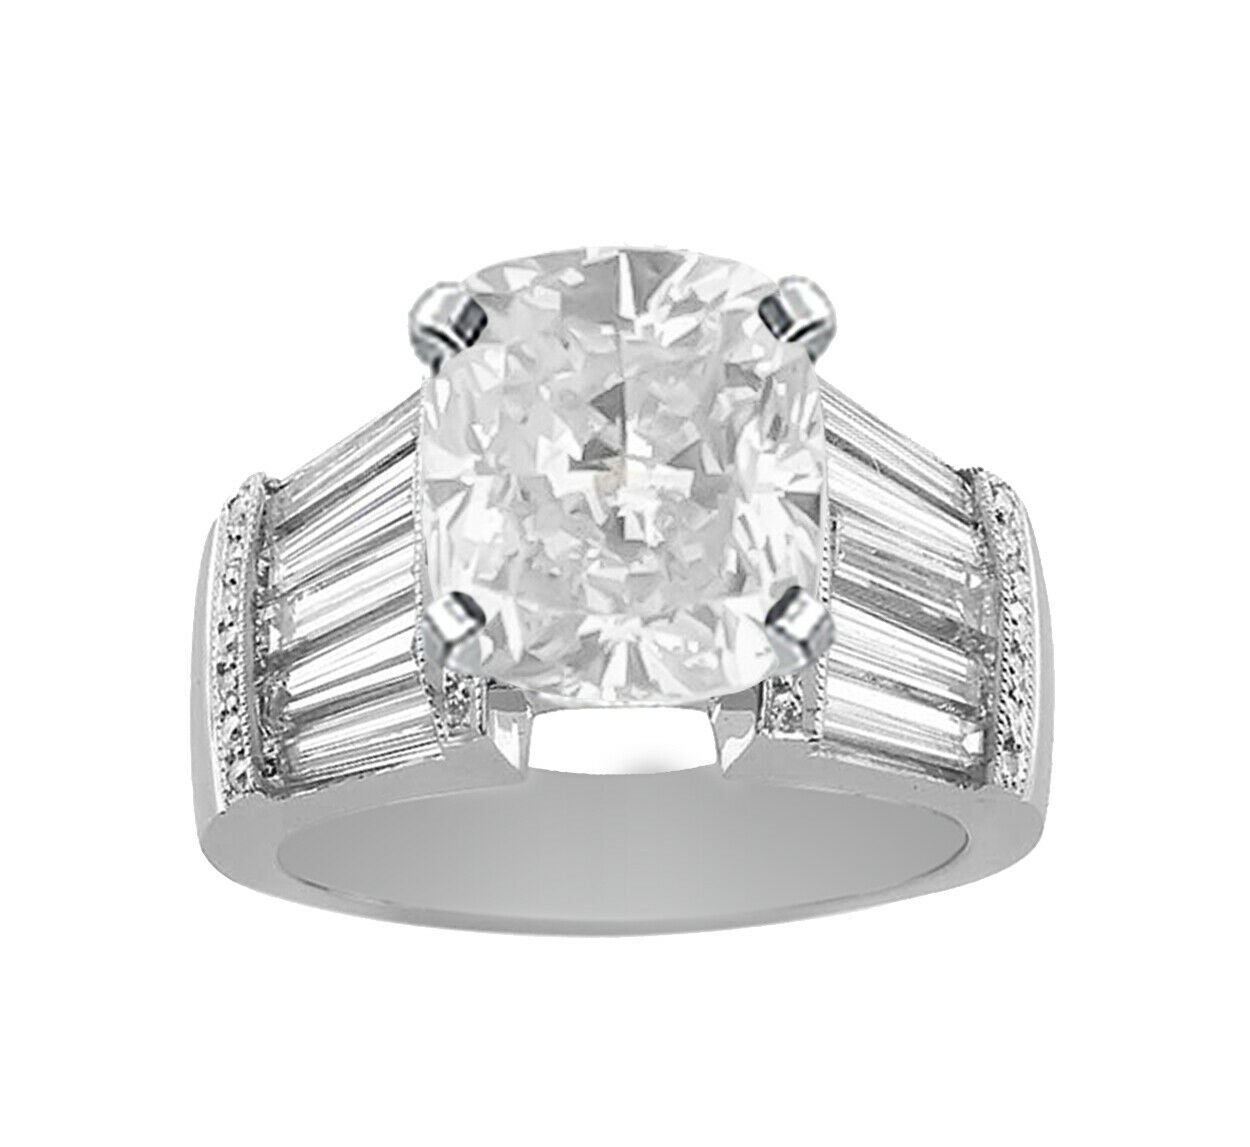 GIA Certified Diamond Engagement Ring Cushion Cut 18k White Gold 3.40 carat